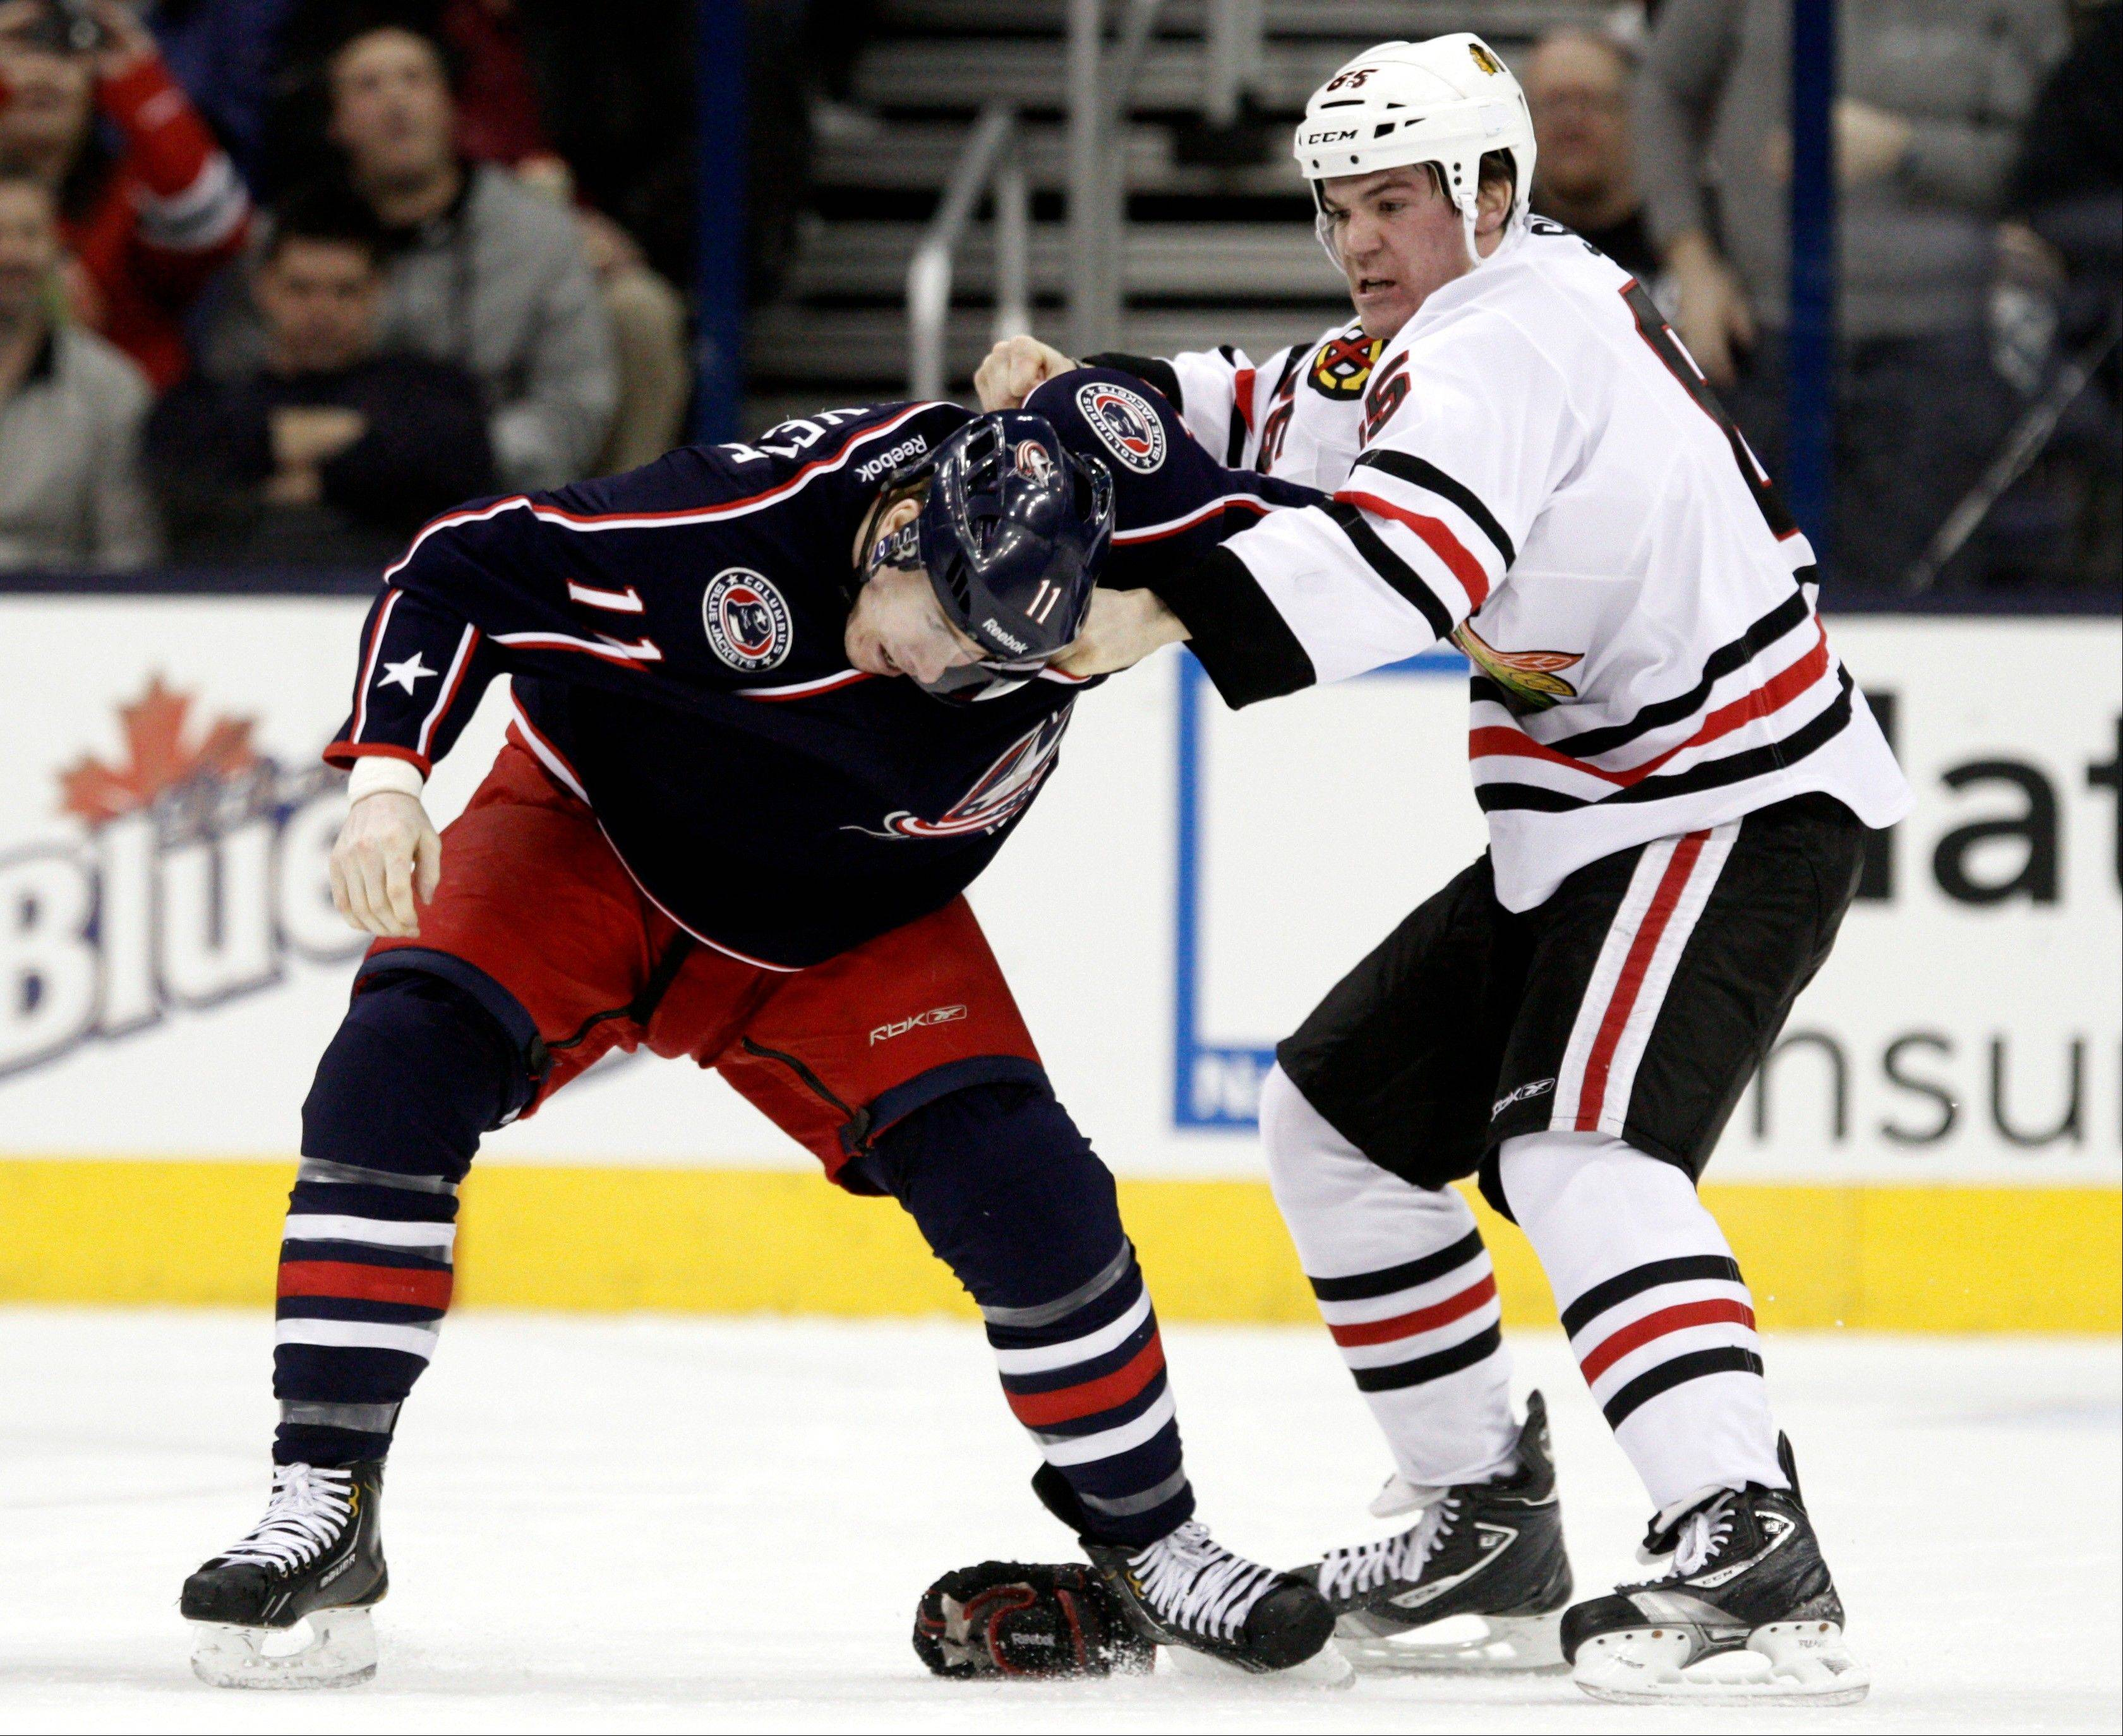 Chicago Blackhawks' Andrew Shaw, right, fights with Columbus Blue Jackets' Matt Calvert during the first period.